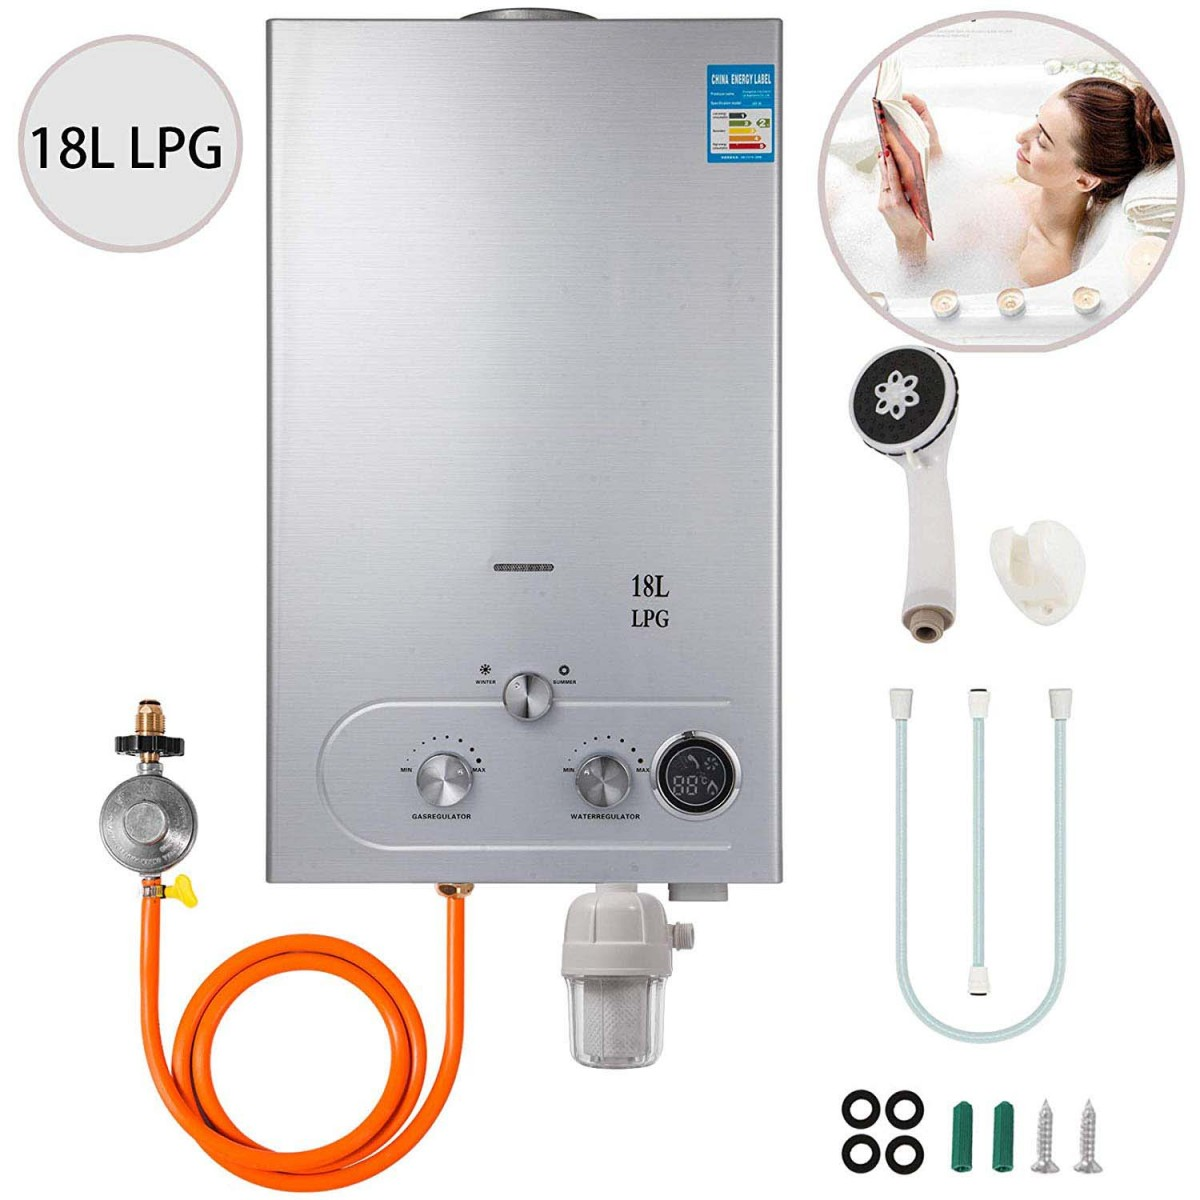 Hcda73501d9444083bead7c0b814310bd7 18L LPG Hot Water Heater - Instant Shower Water Heater